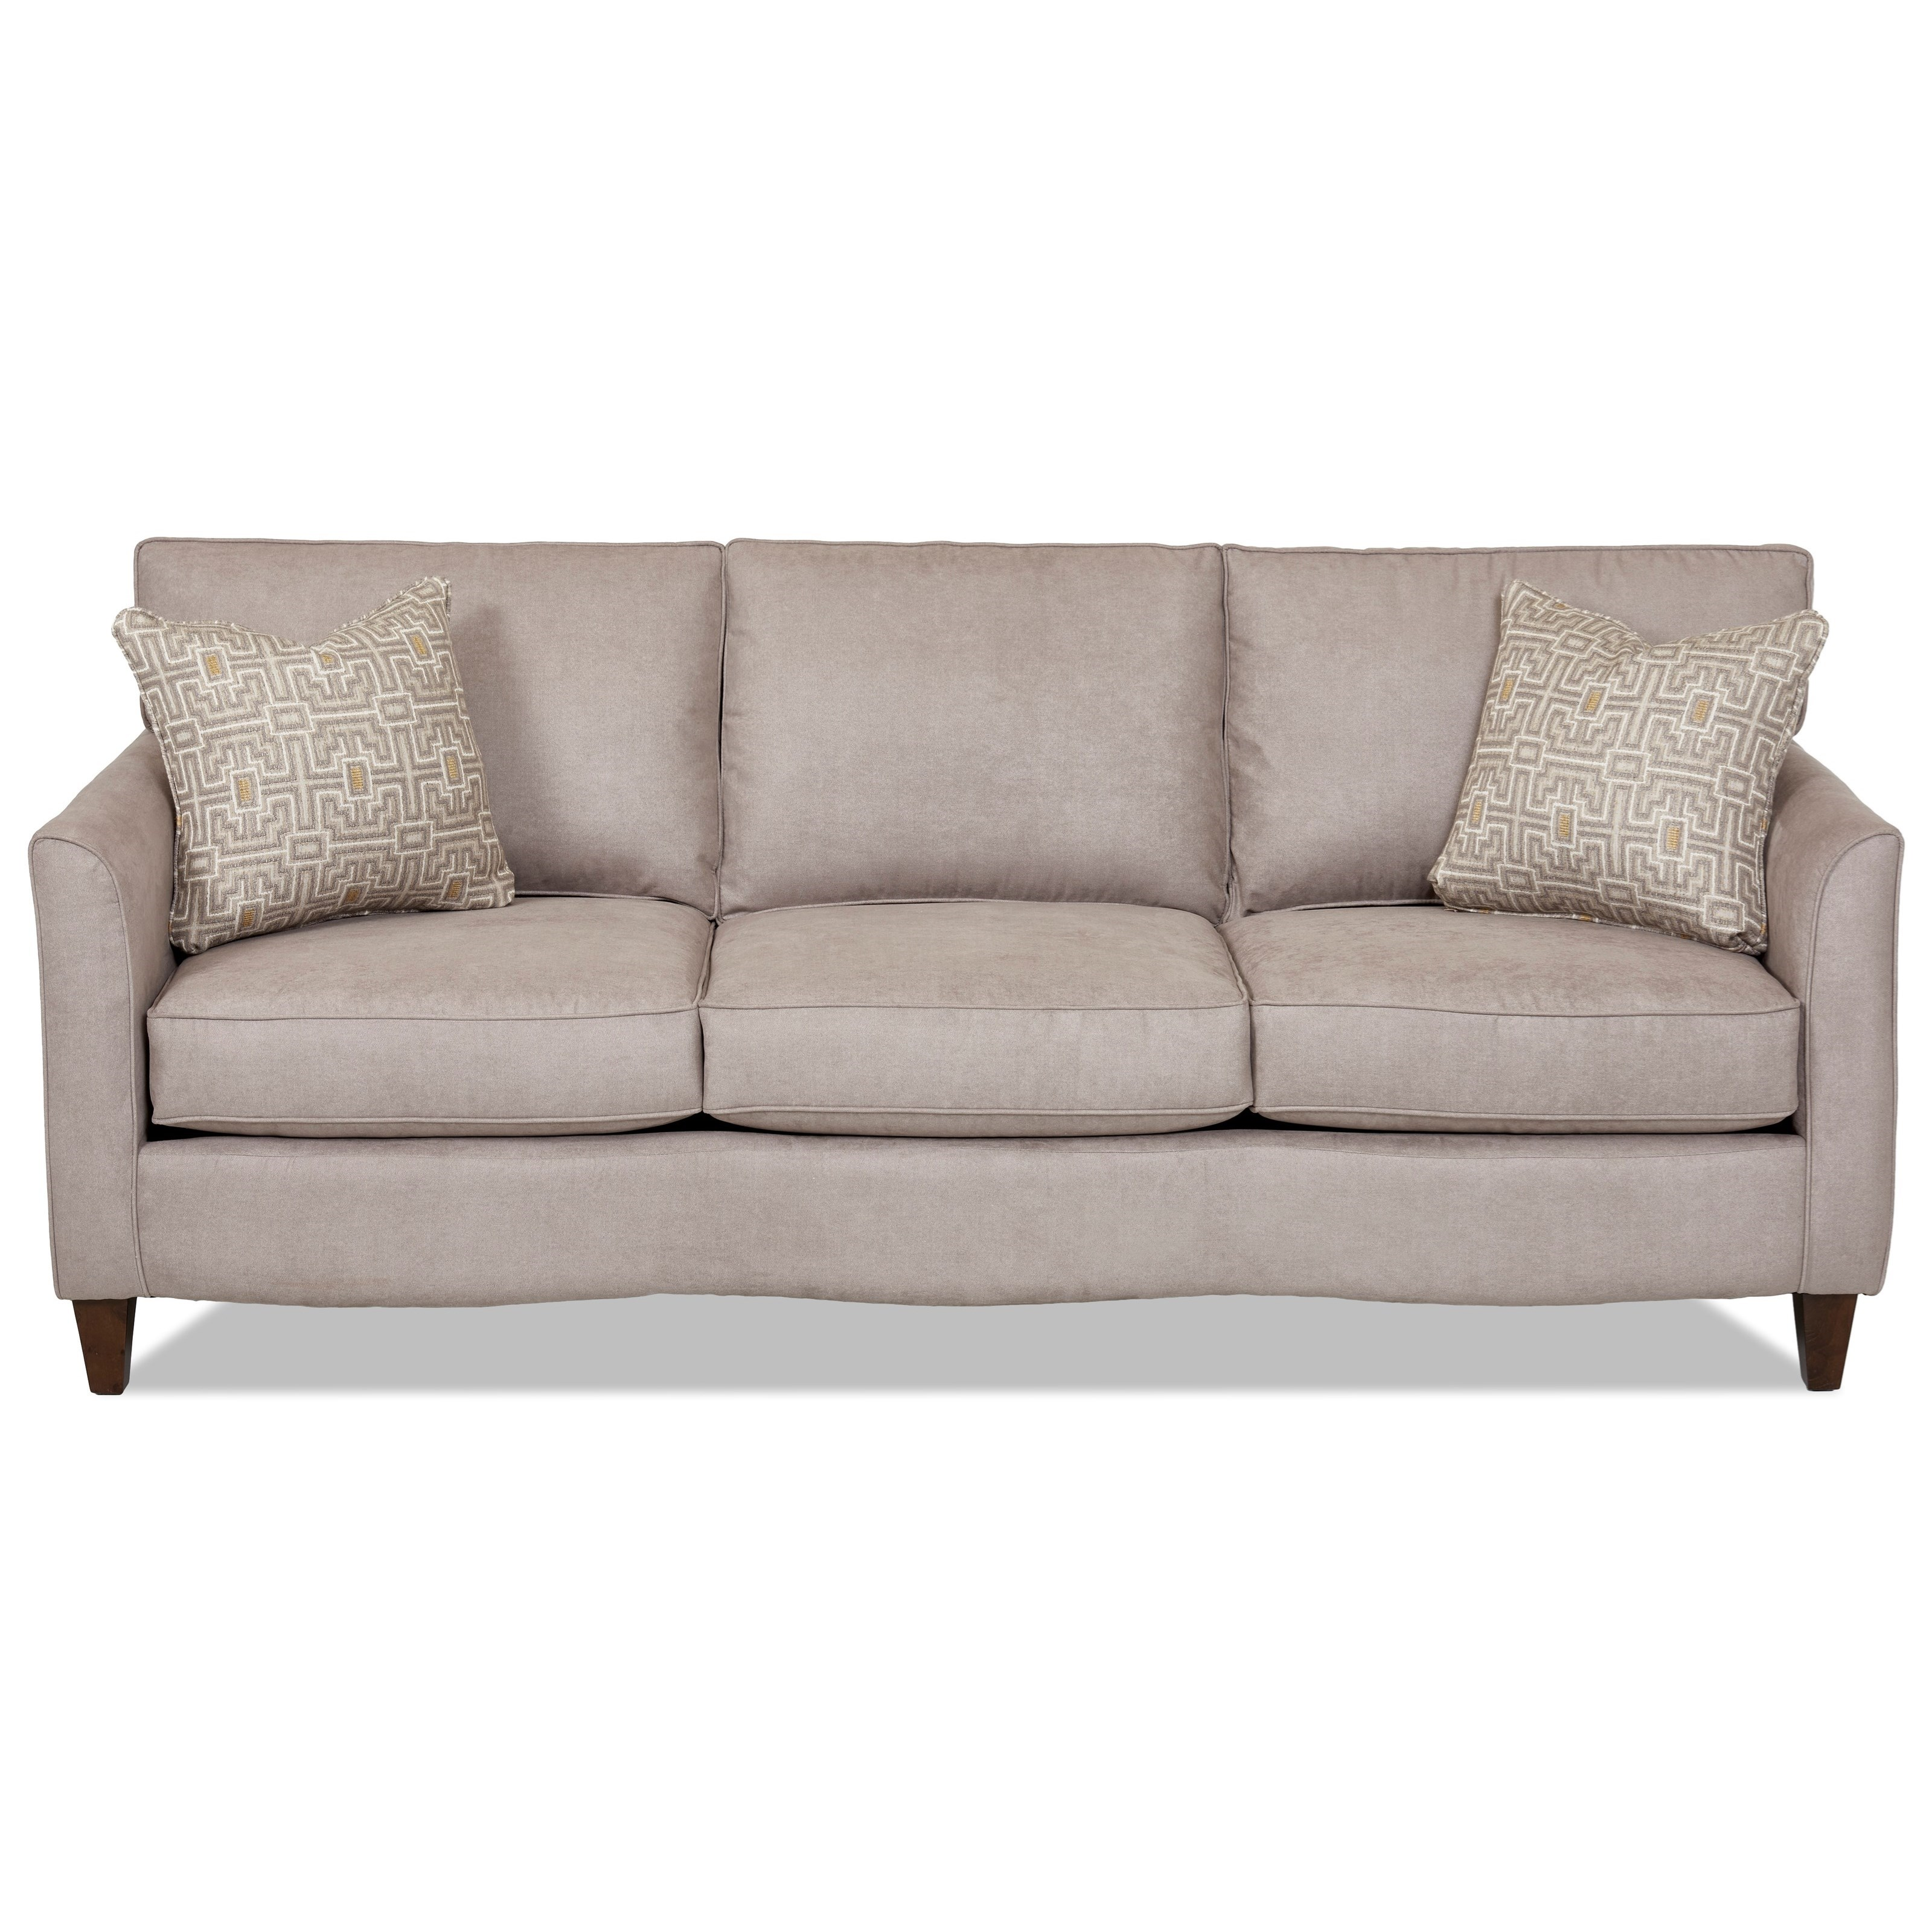 Klaussner Hopewell  Sofa - Item Number: K17200 S-LeviSand